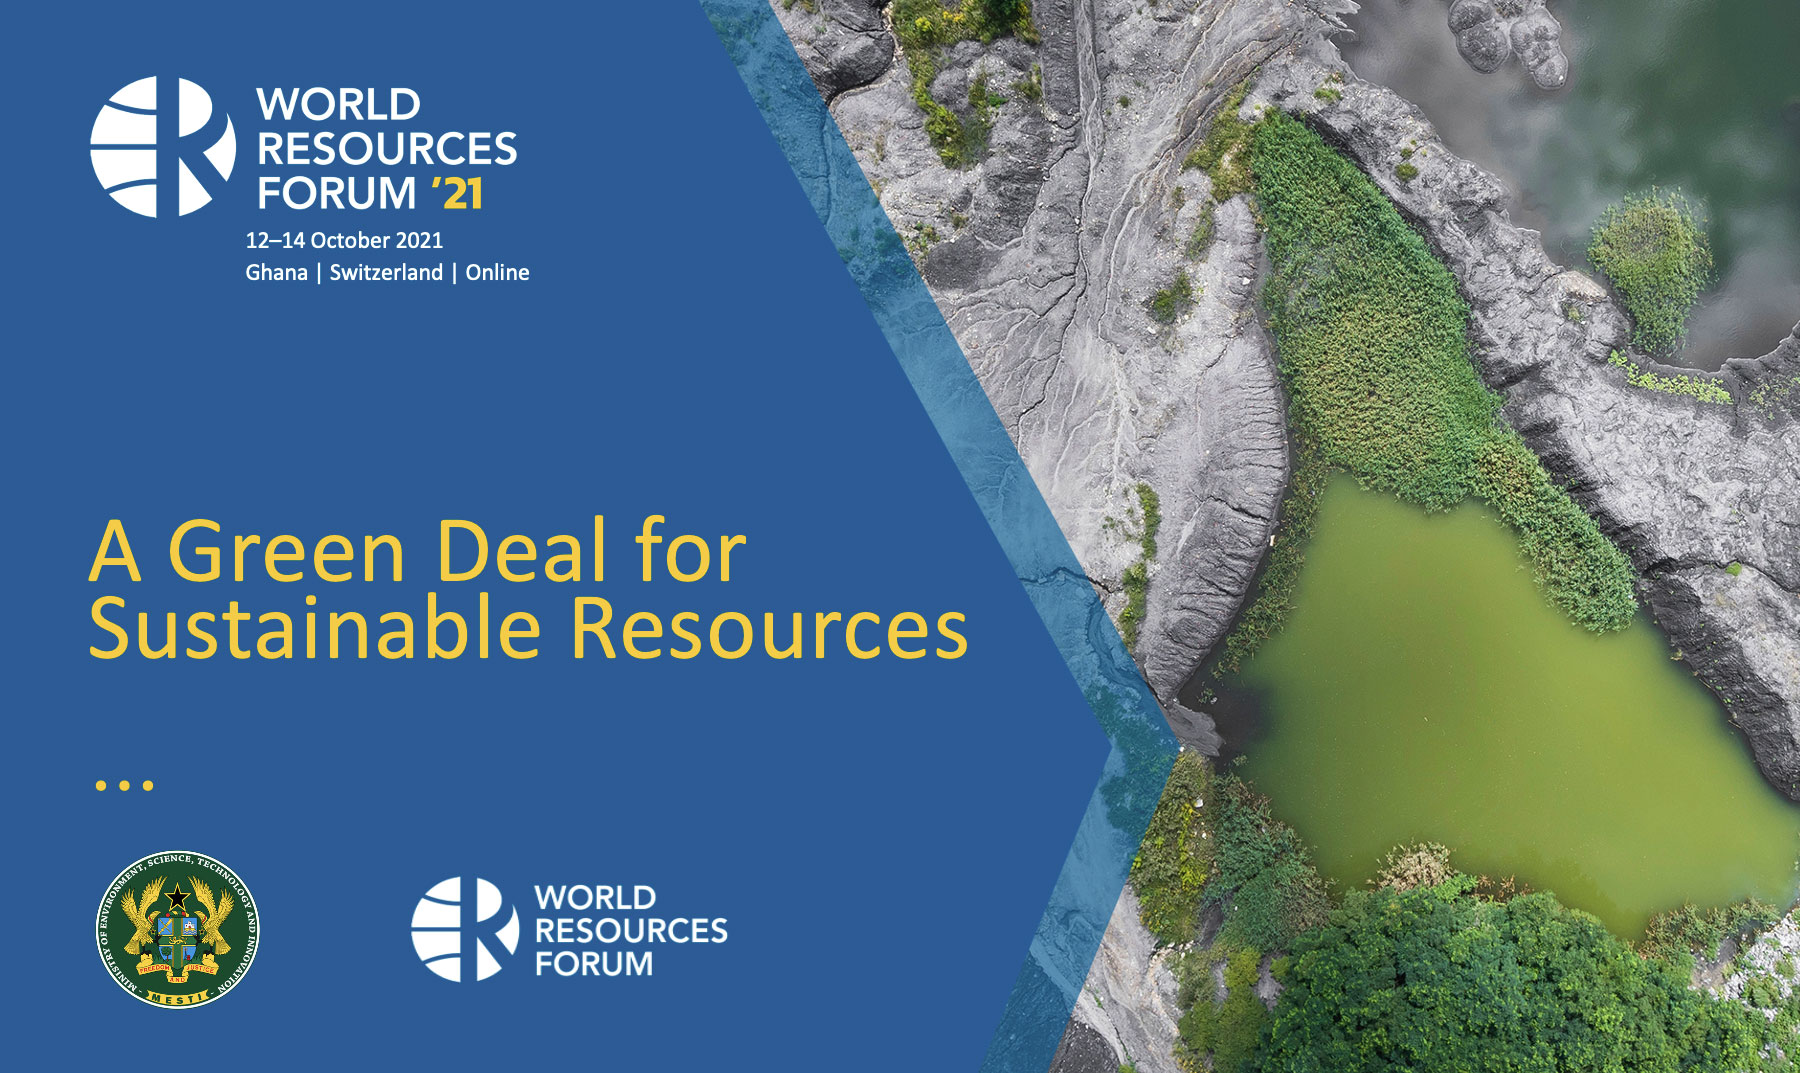 World Resources Forum 2021: A Green Deal for Sustainable Resources (Oct. 12-14)